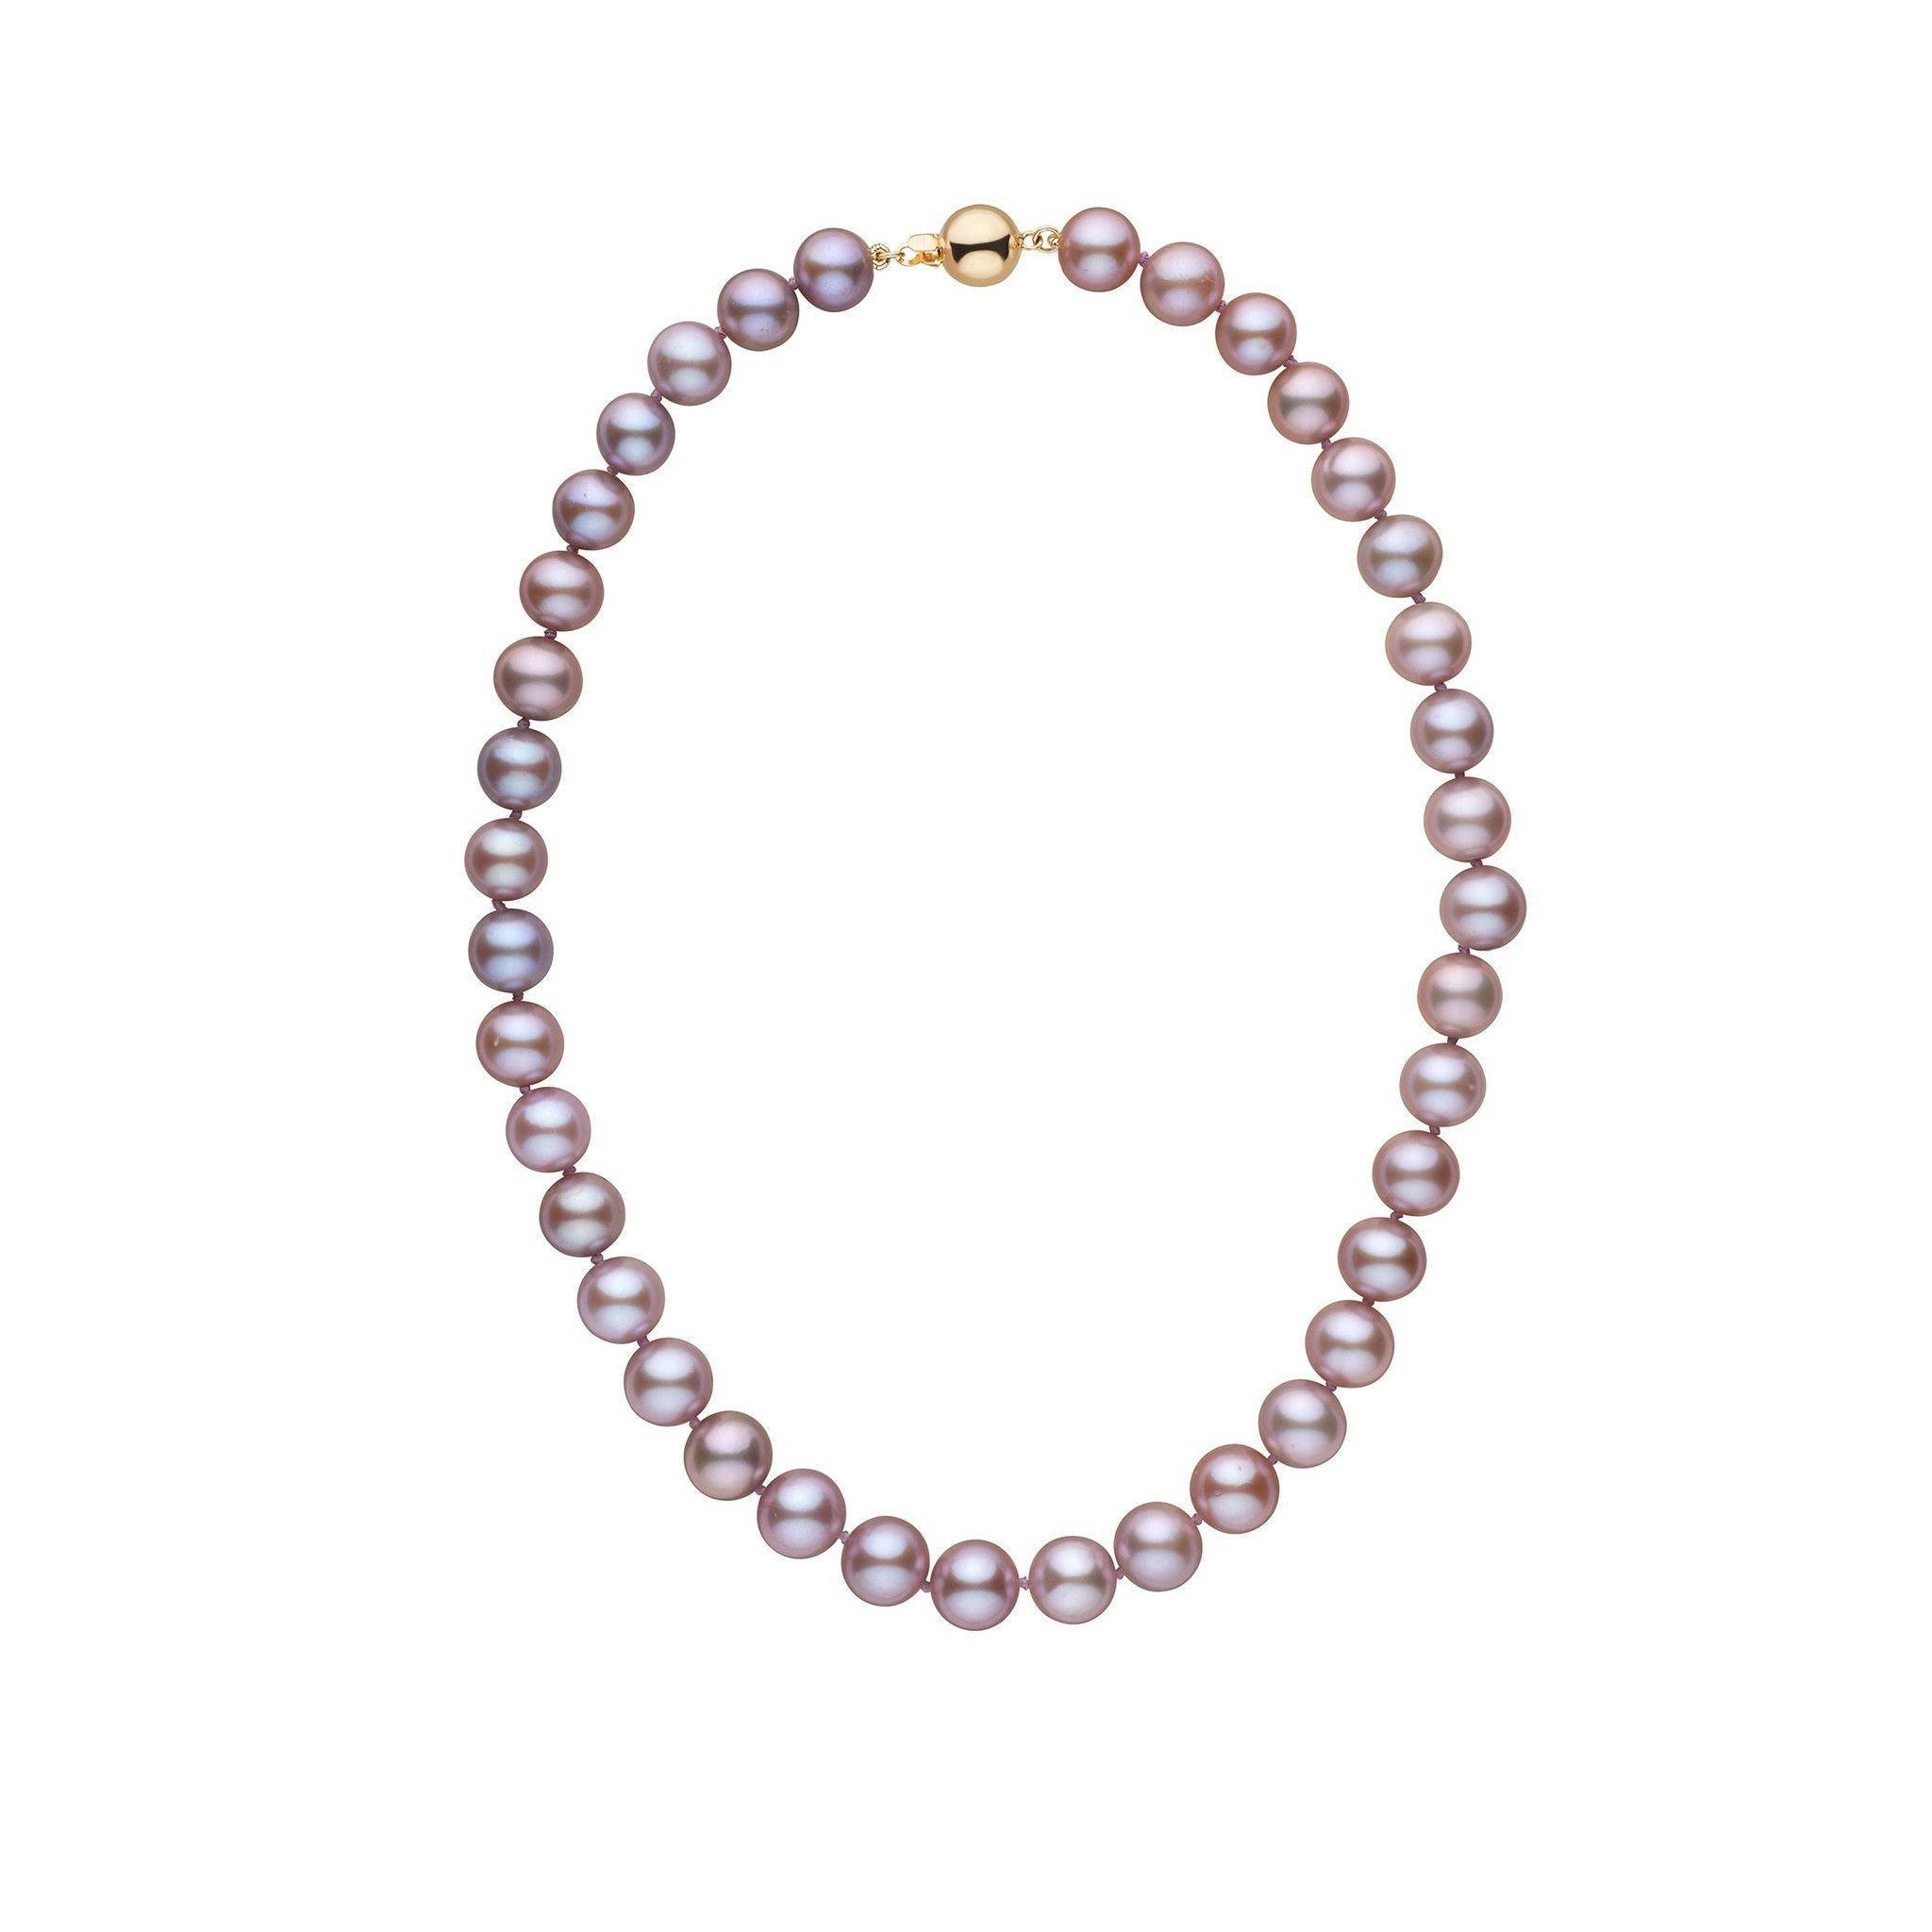 9.5-10.5 mm 16 Inch AA+ Lavender Freshwater Pearl Necklace